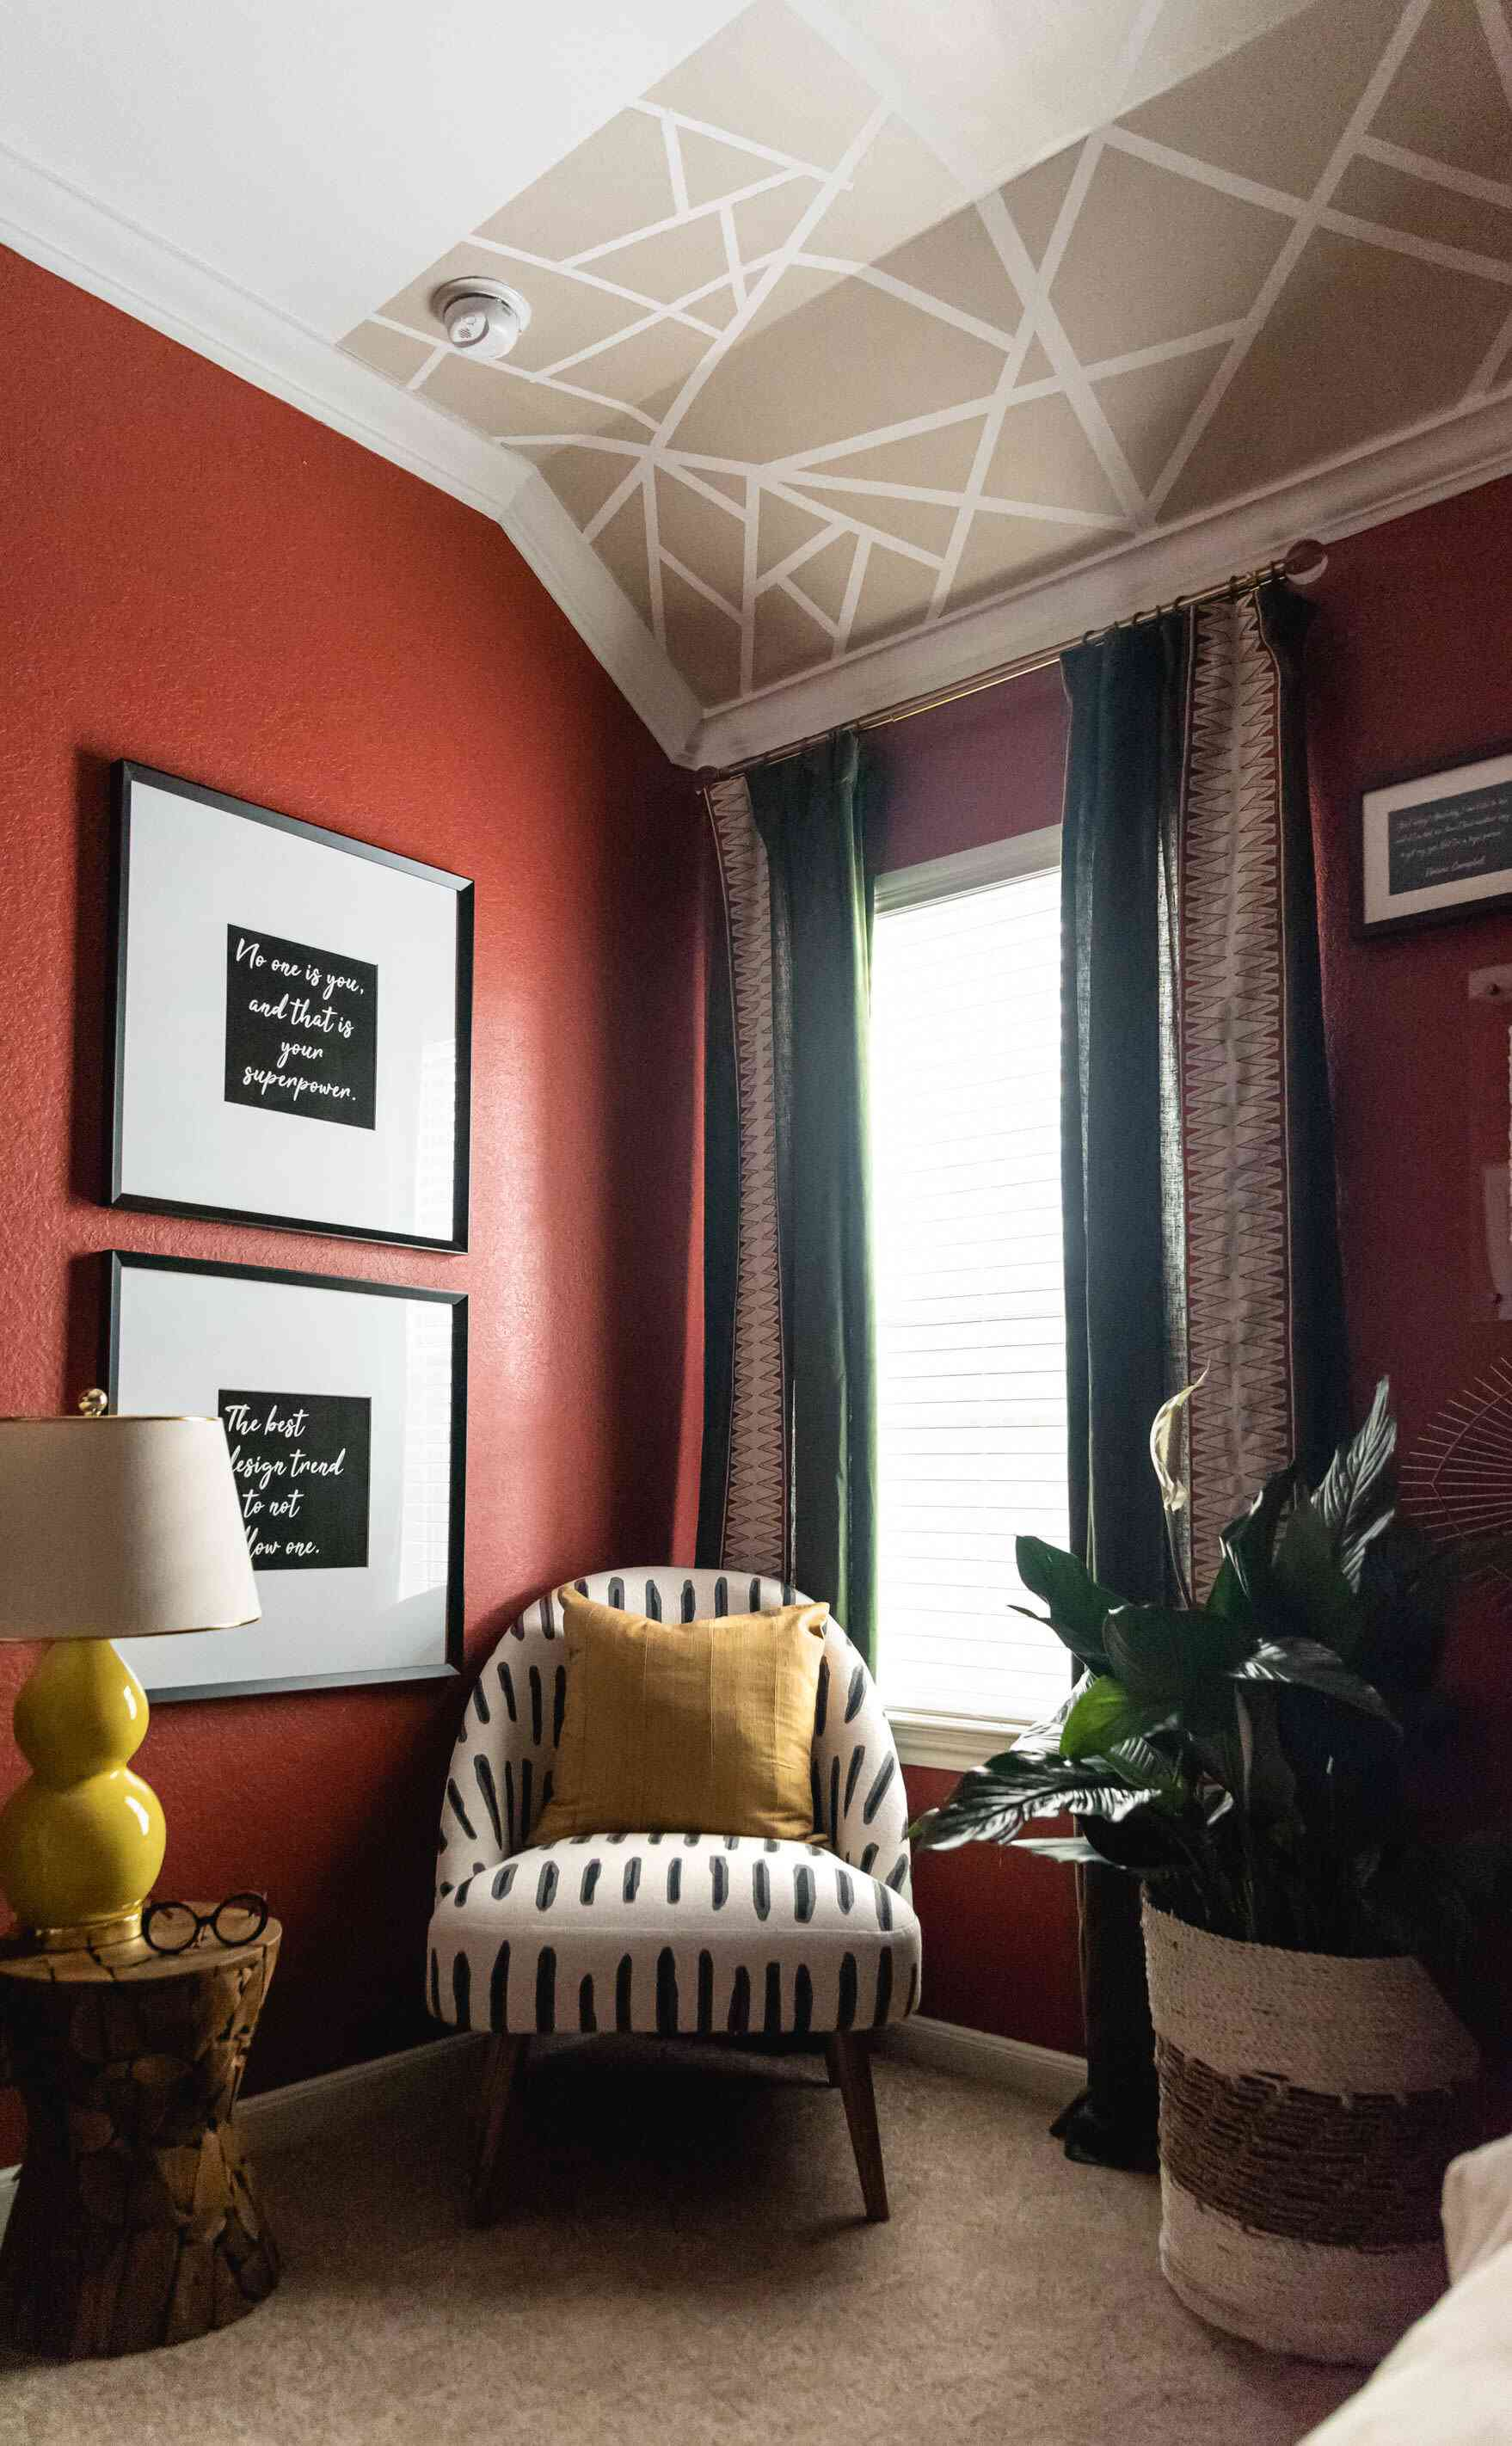 red bedroom with white and black pattern chair, red walls, mural on ceiling